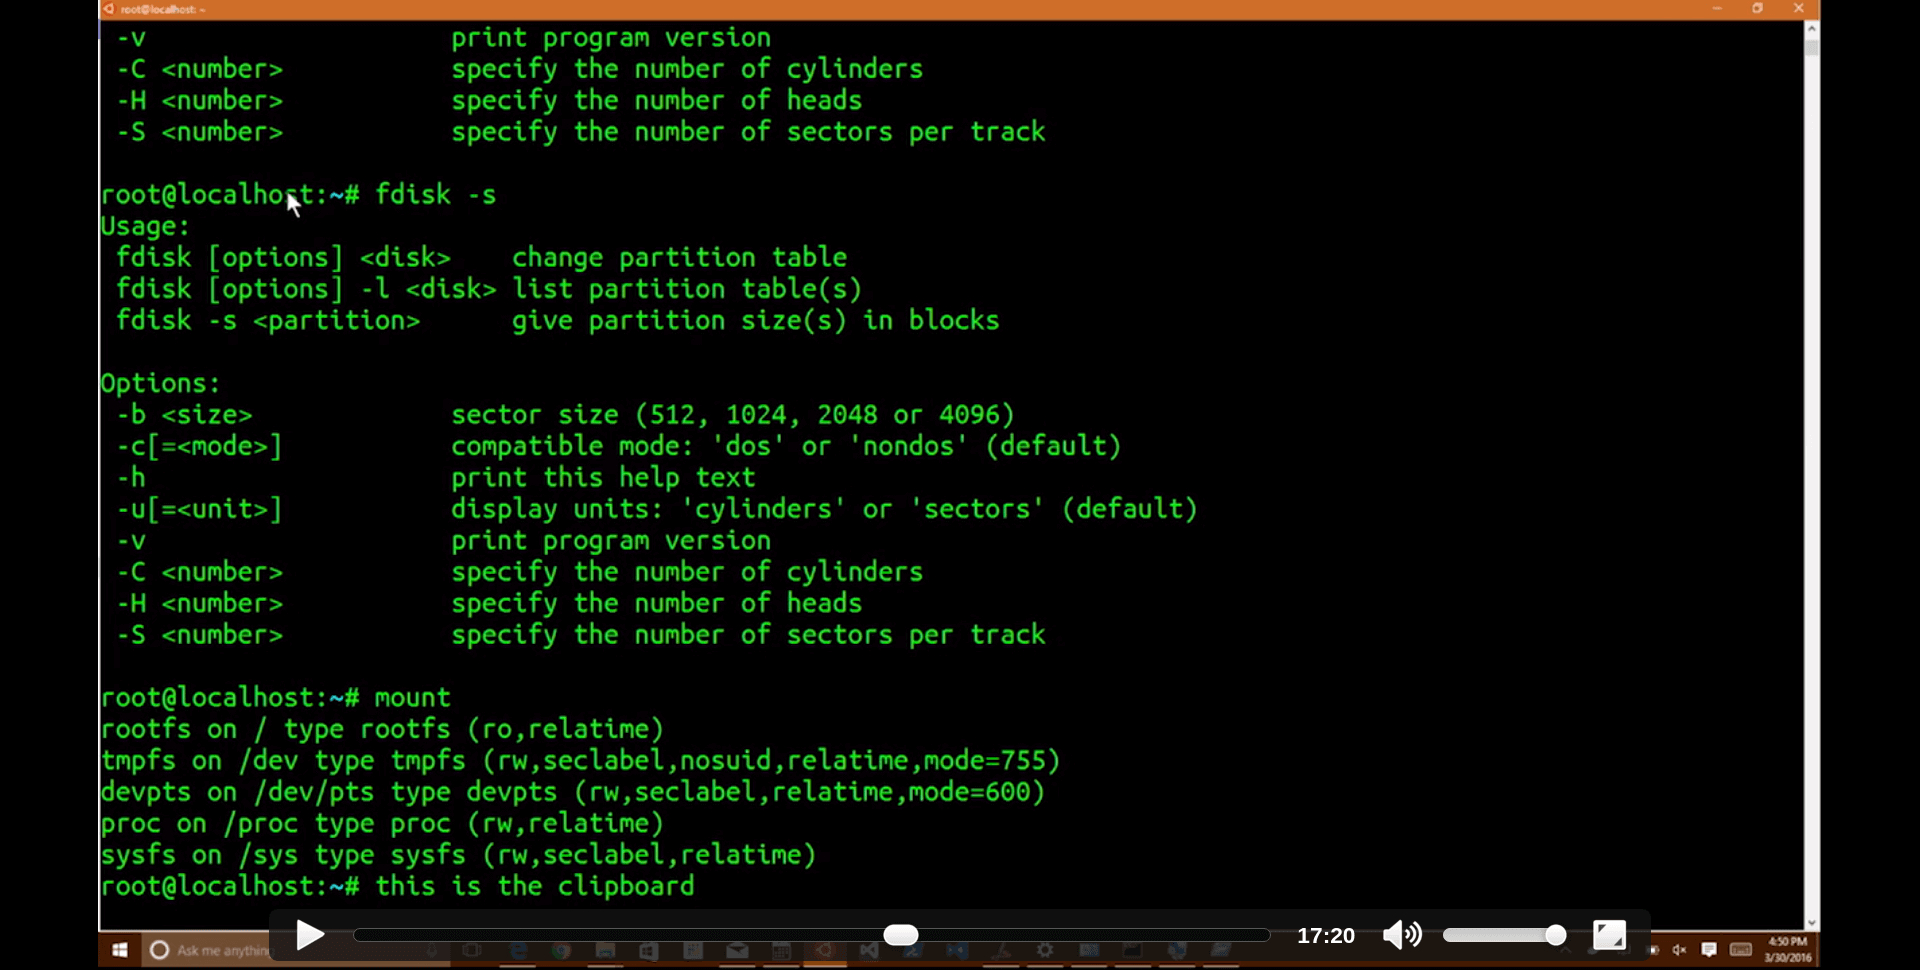 screenshot-from-Linux Command Line on Windows-video-fdisk-and-mount-and-paste.png